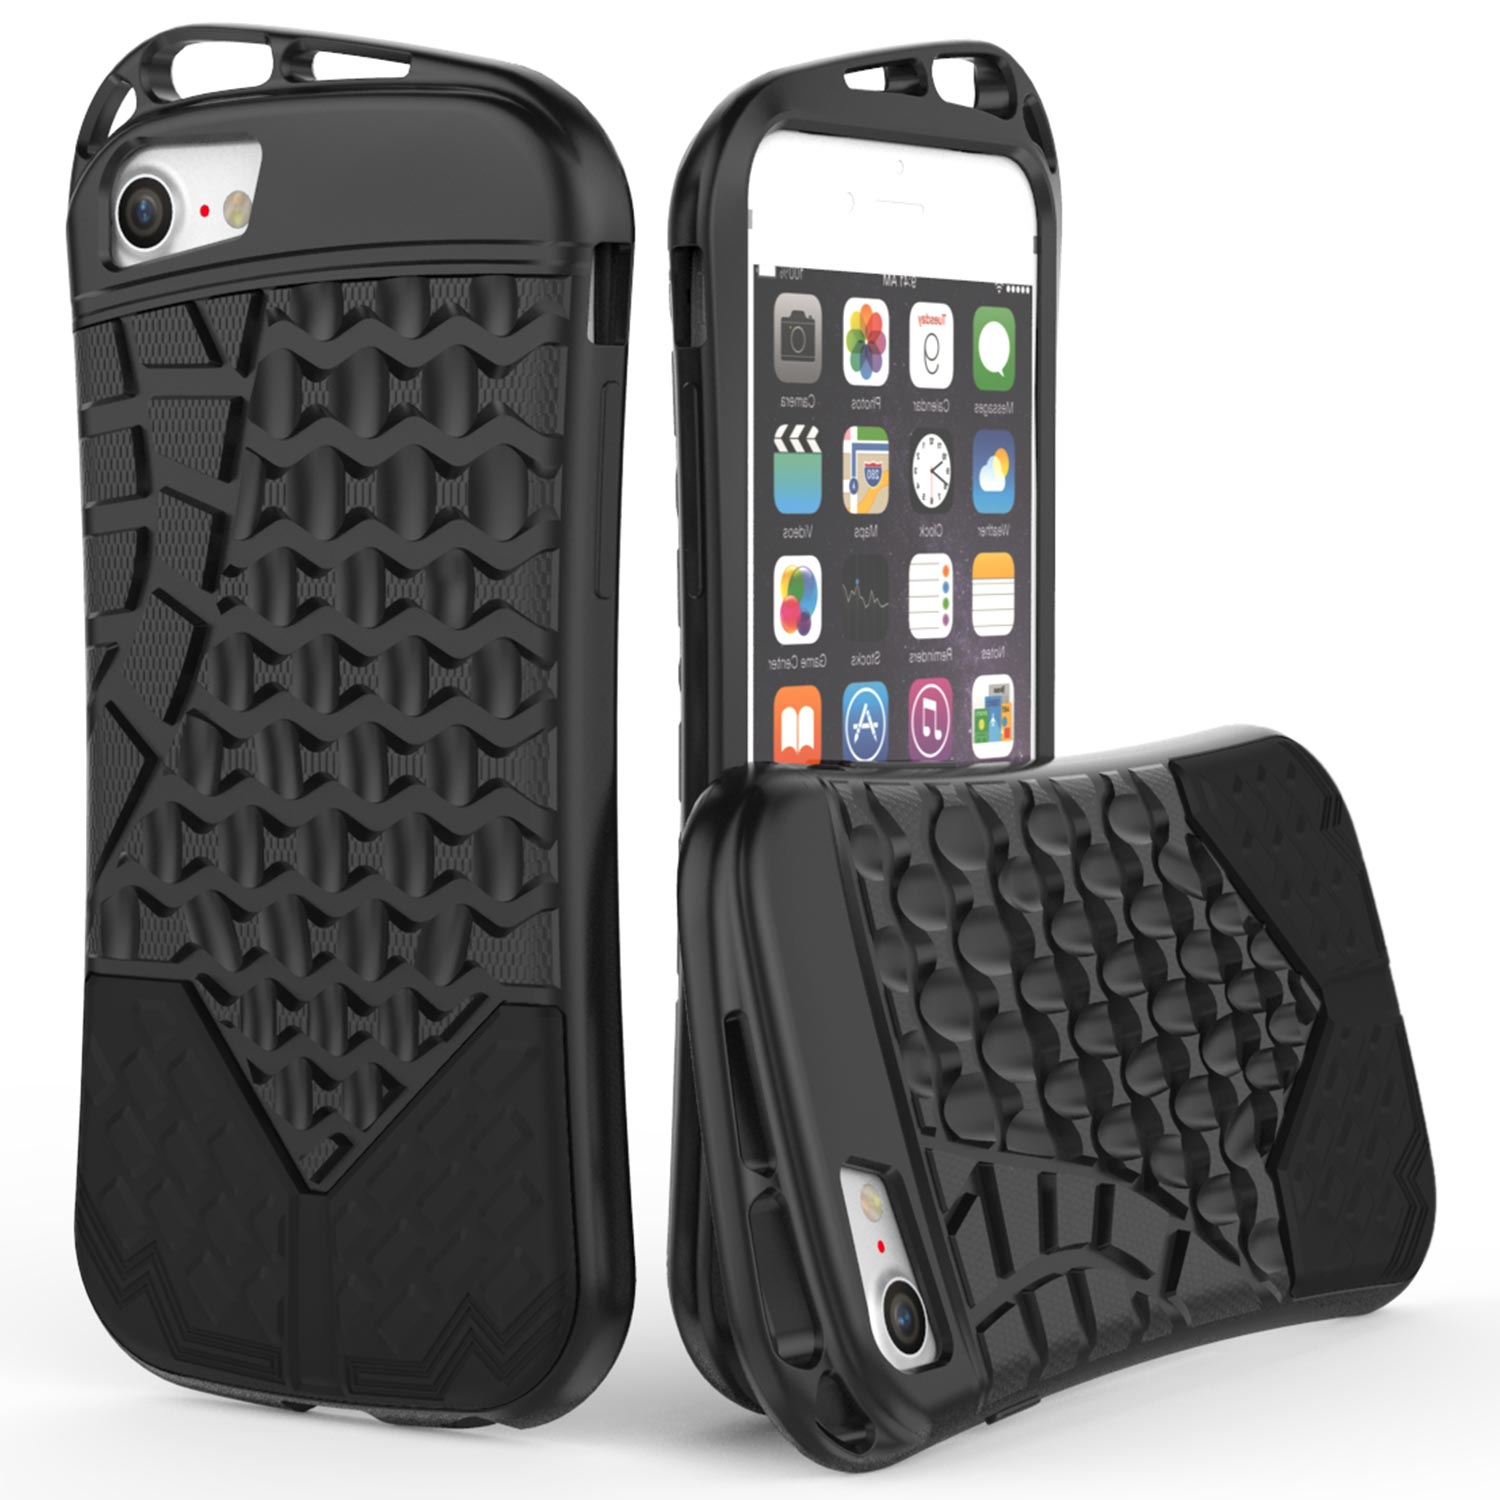 CoverON Apple iPhone 8 / iPhone 7 Case, Trekker Series Protective TPU Rubber Phone Cover with Carrying Loops